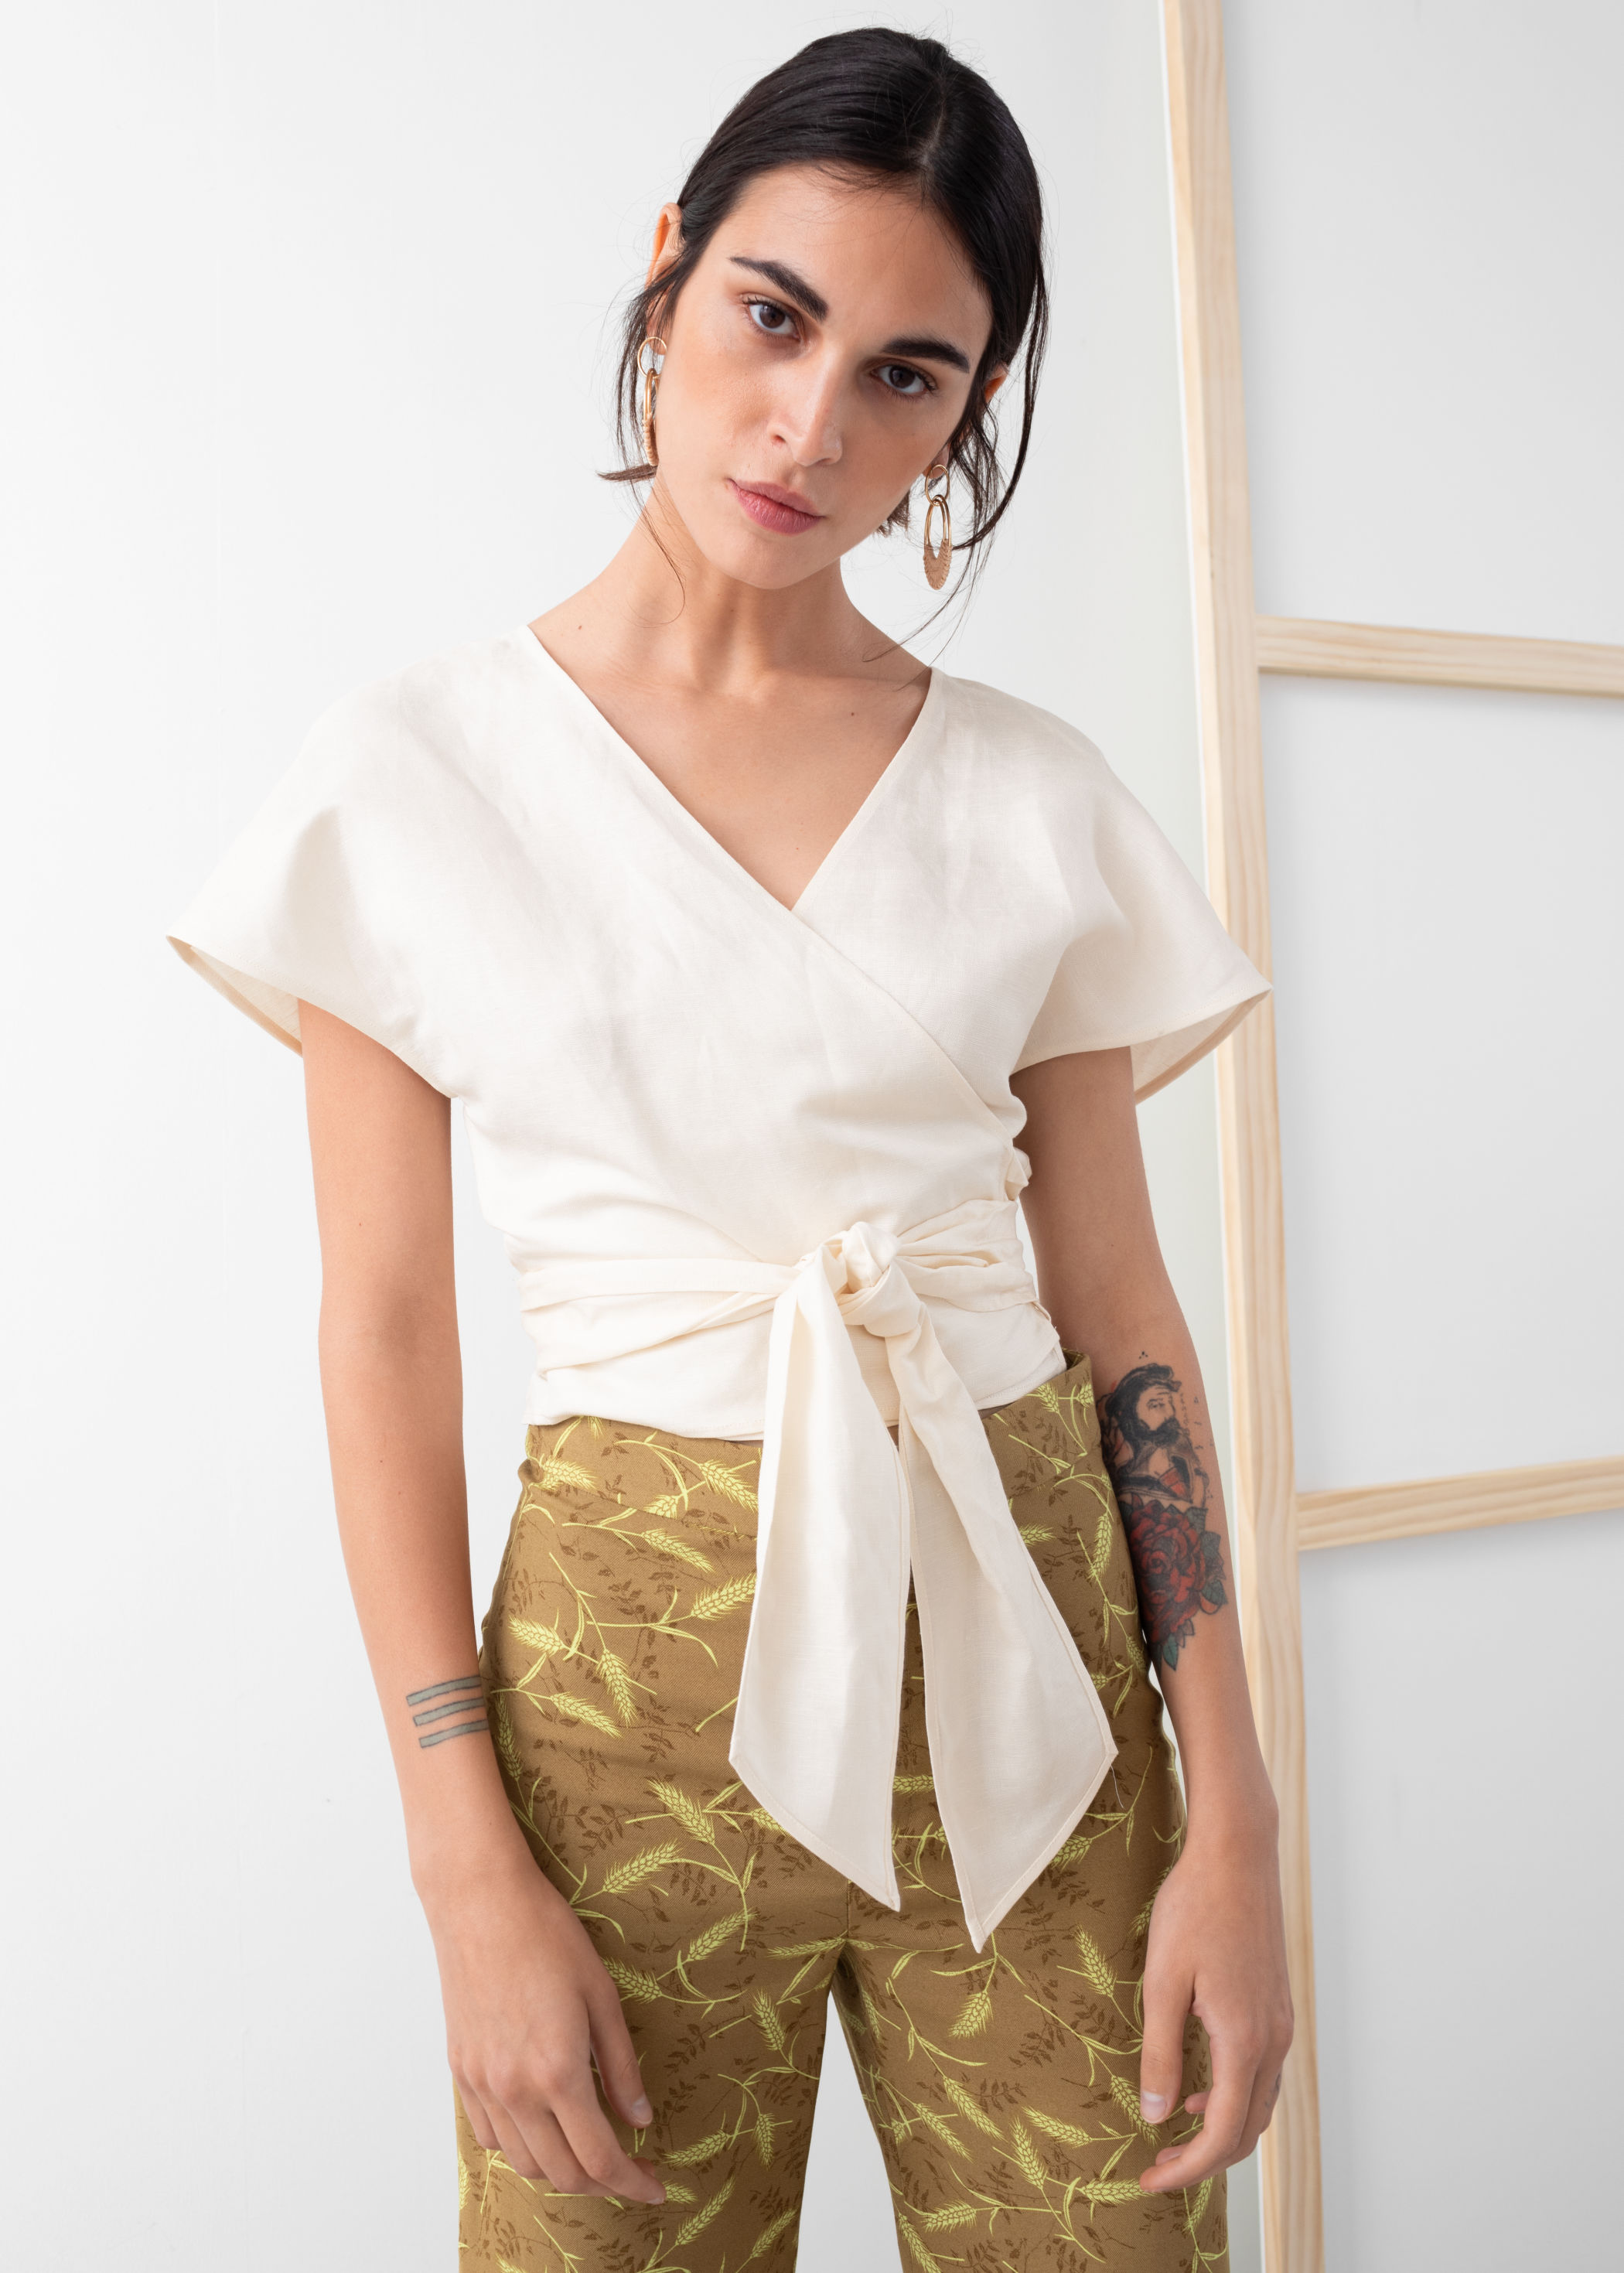 & Other Stories - Linen Blend Wrap Top / $59.00This wrap top is smart both fashion-wise and cool-wise with it's loose fitting sleeves and linen material, coupled with its flattering v-neck and wrap waist.